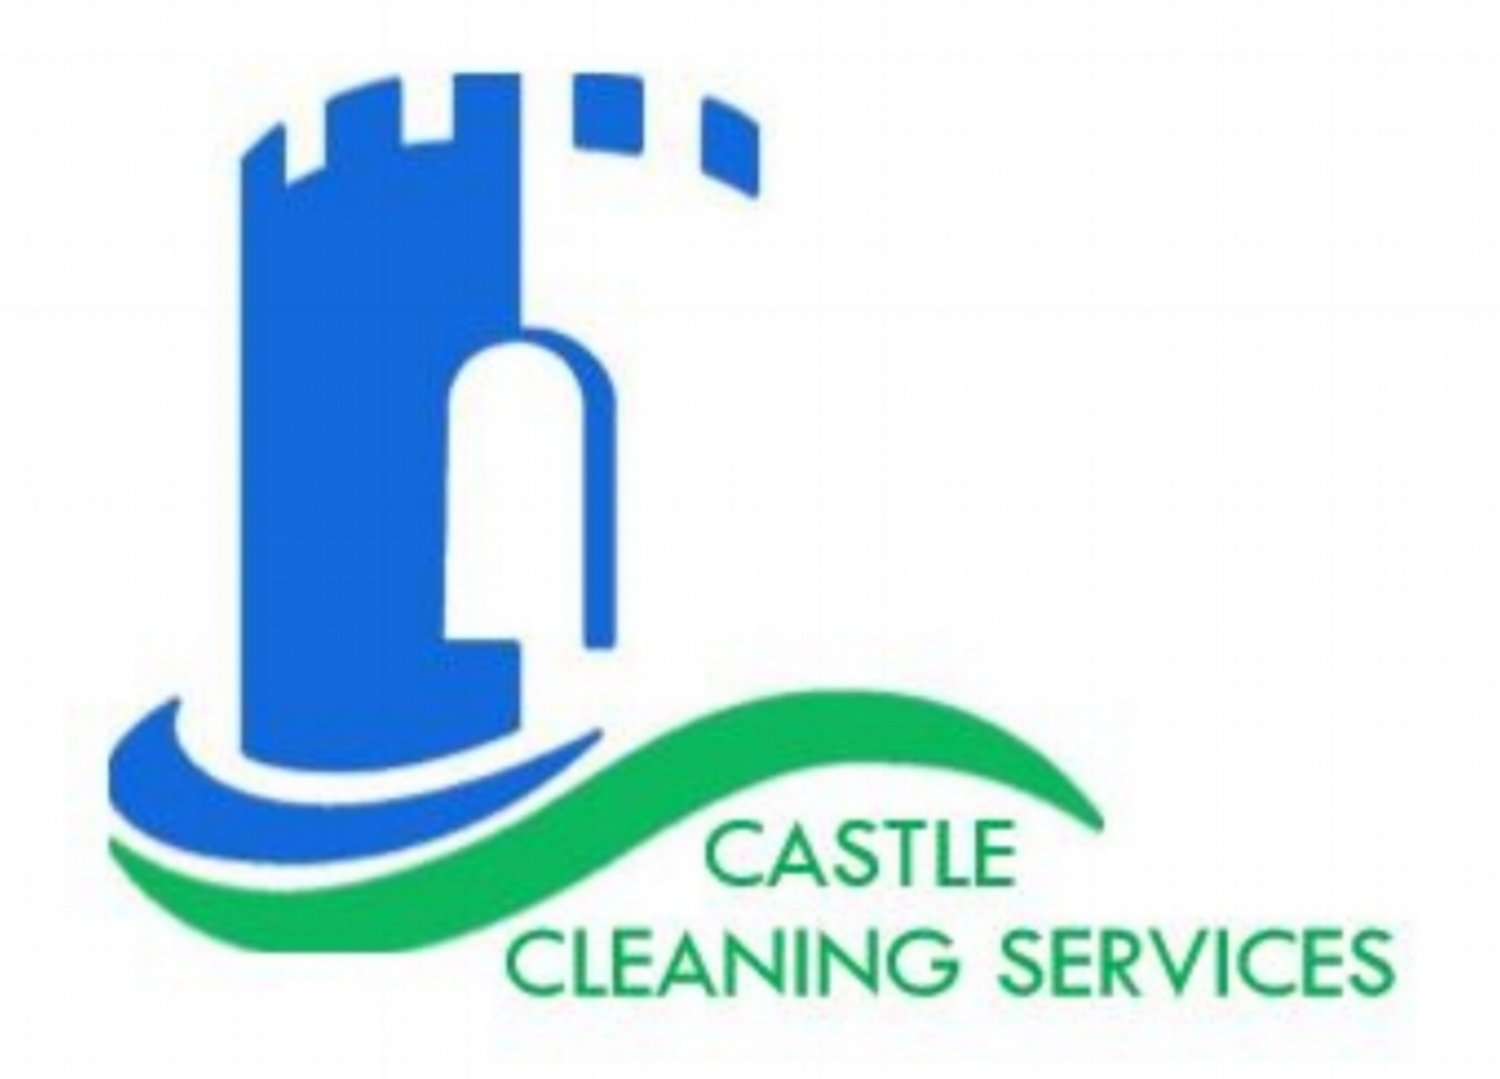 Castle Cleaning Services